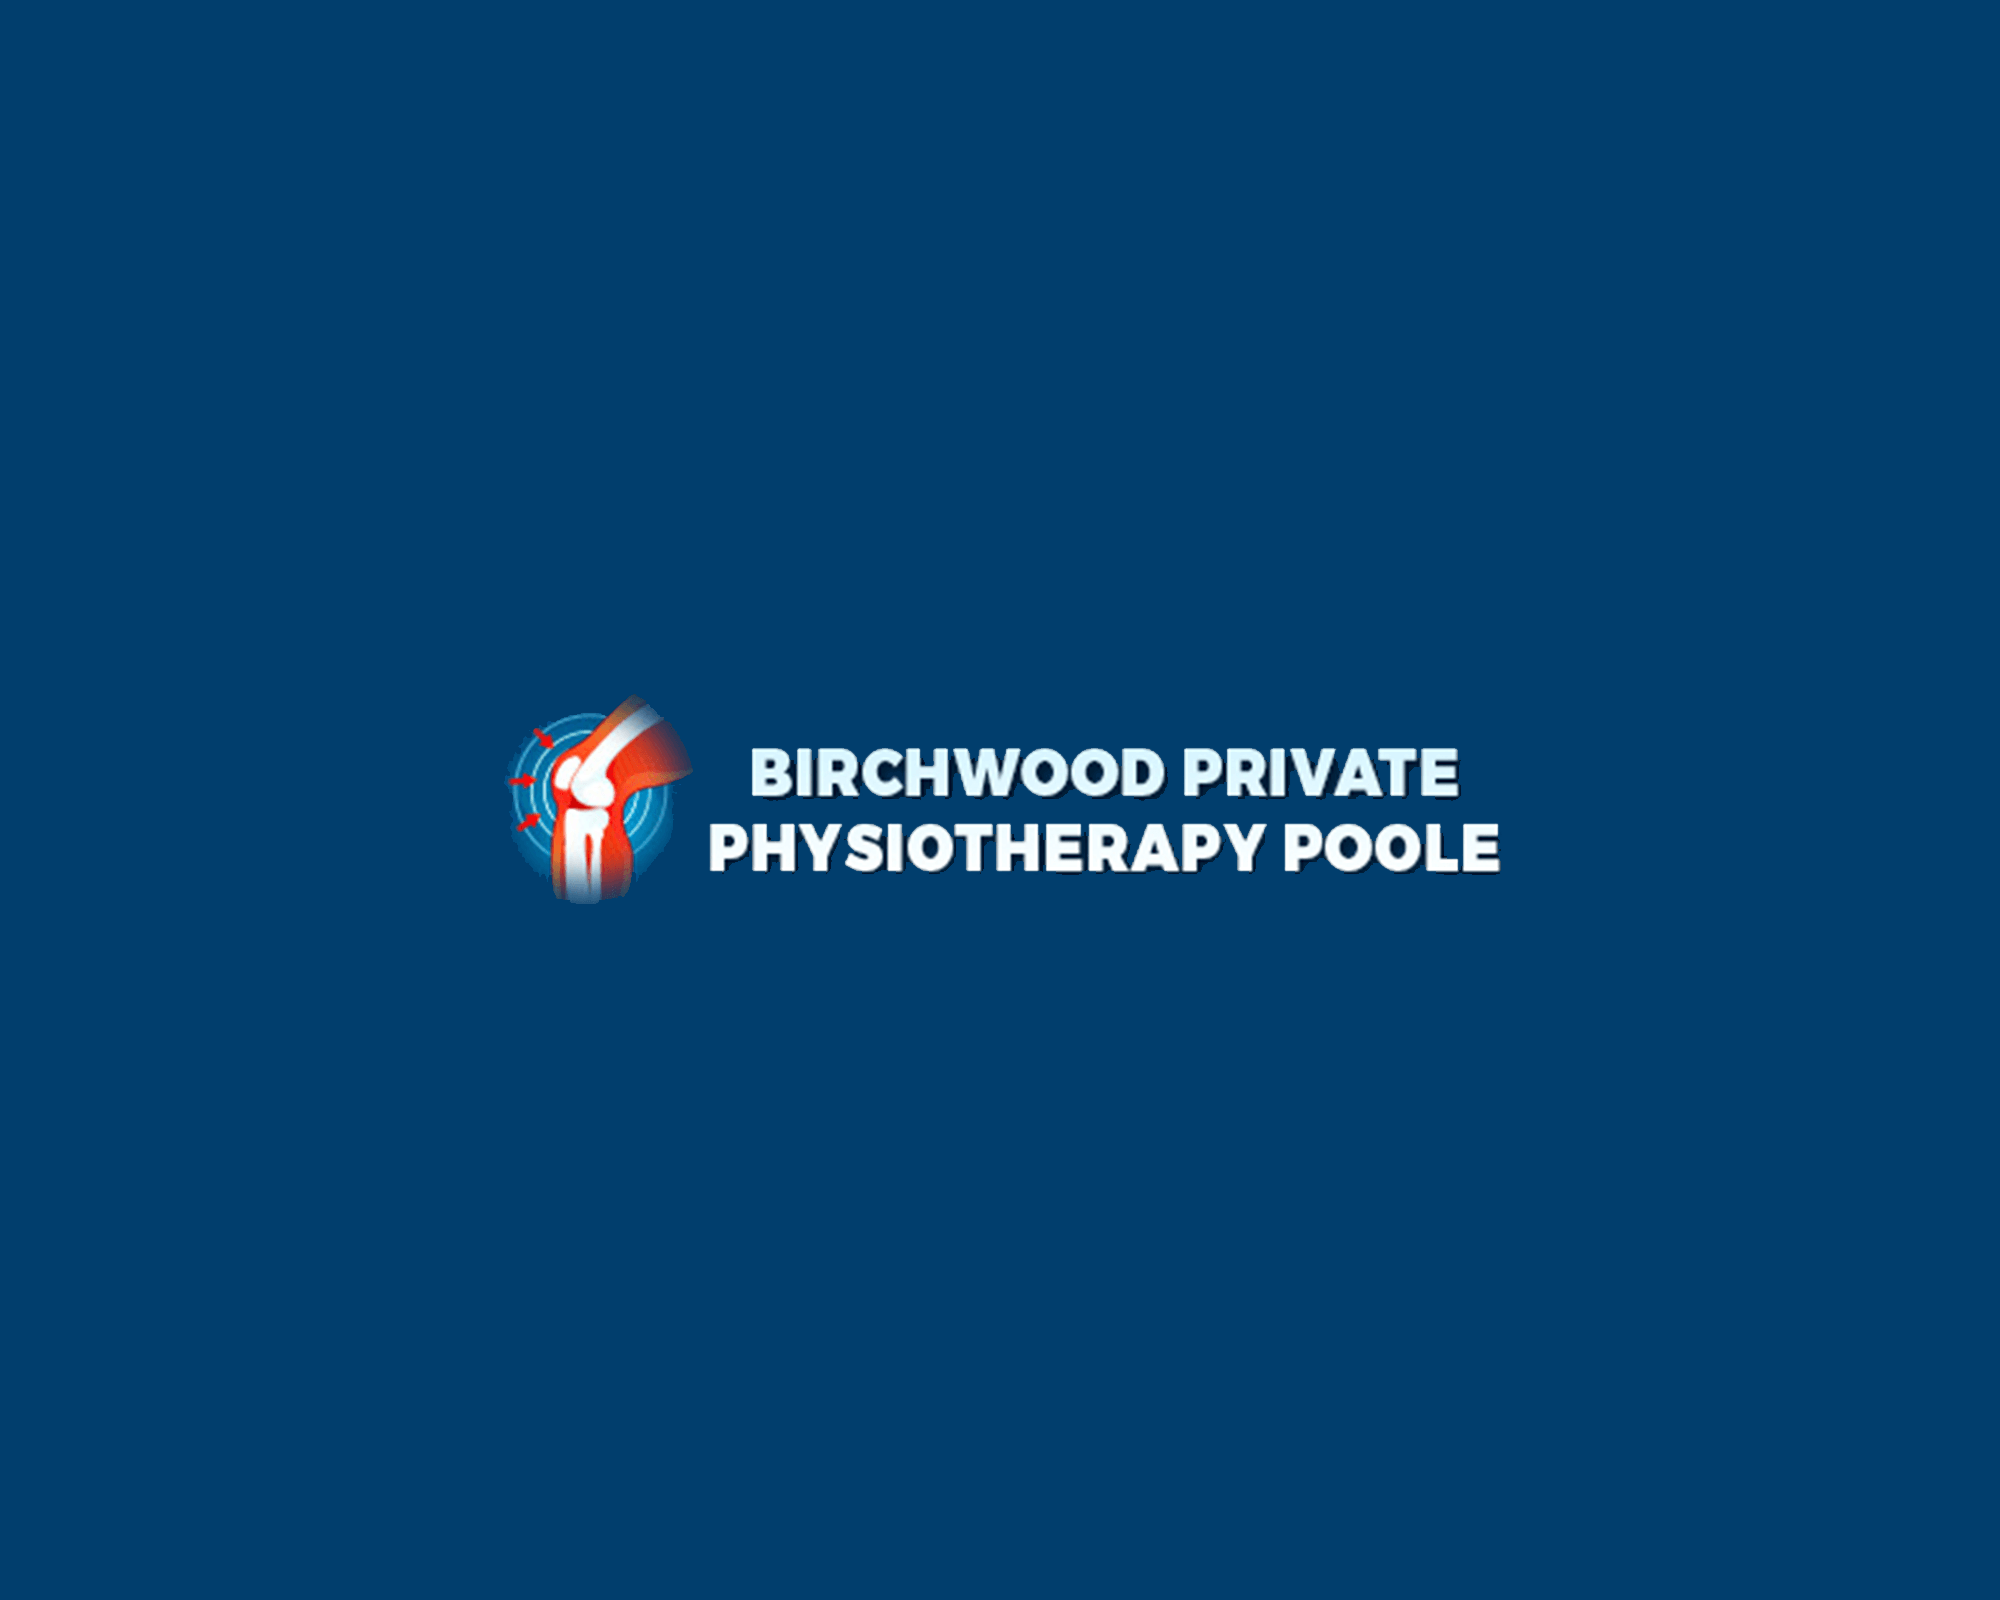 birchwood private physiotherapy poole Logo